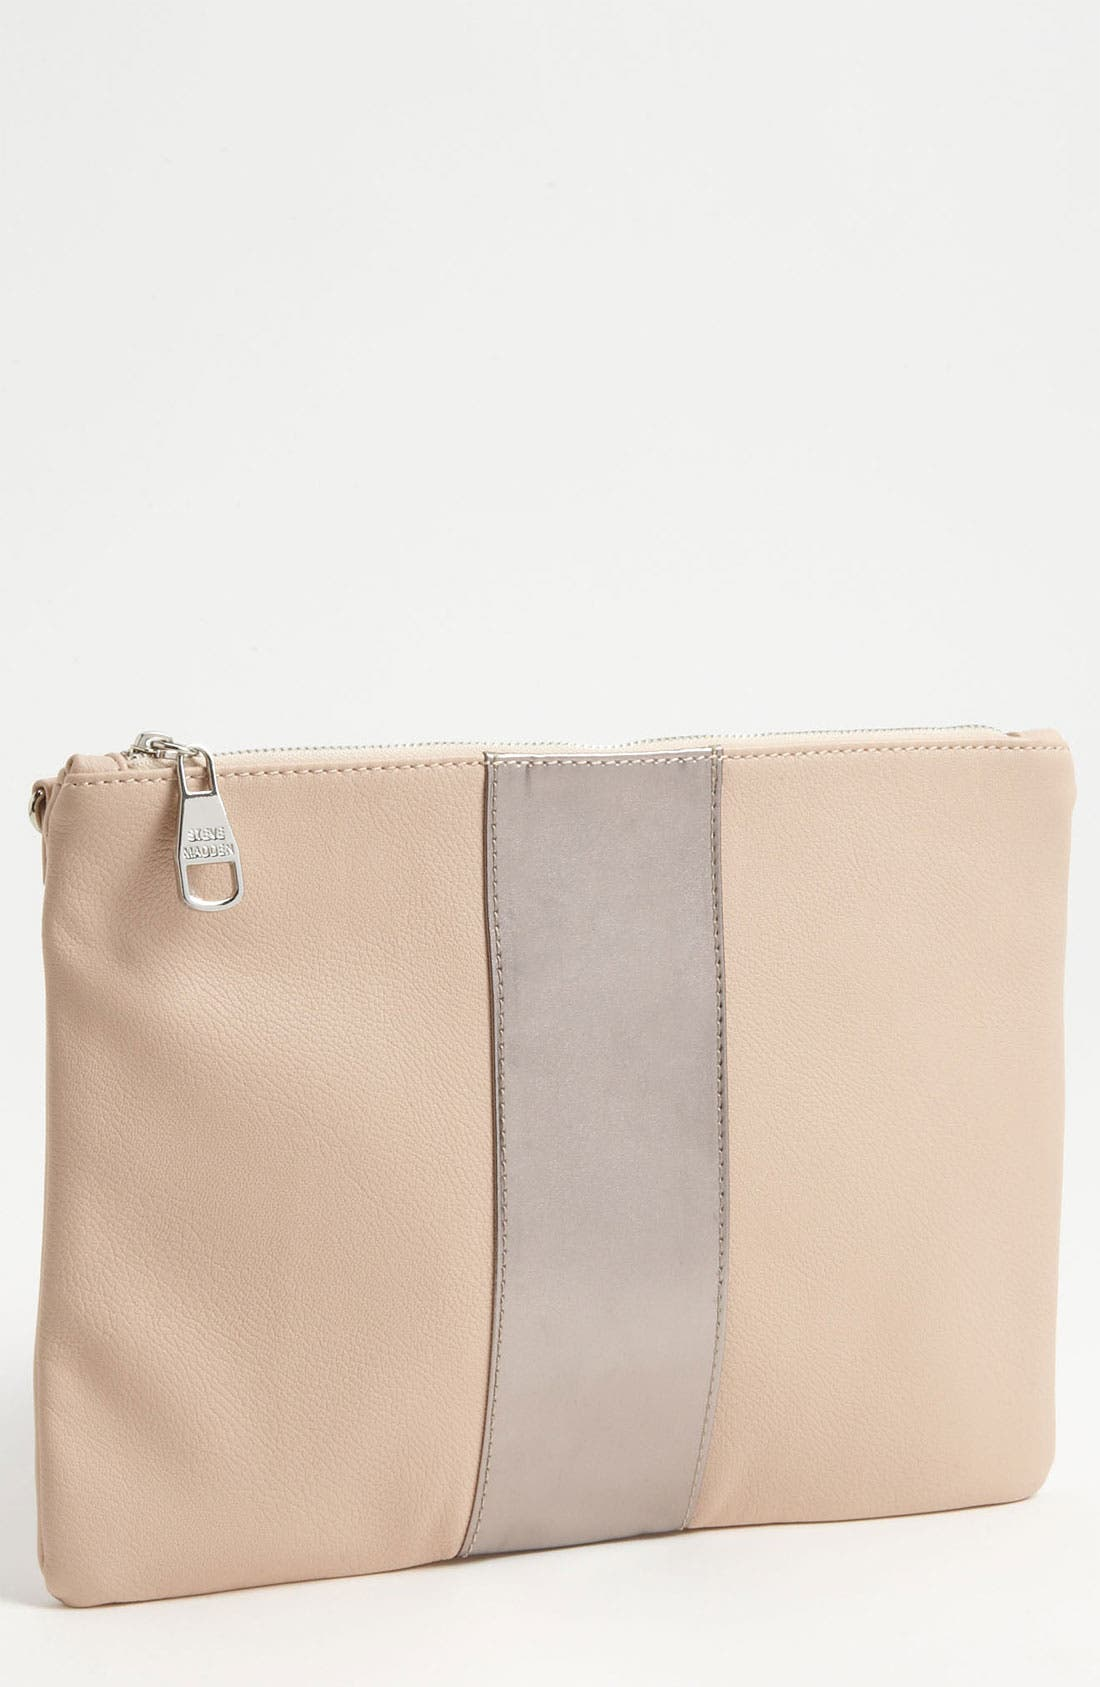 ,                             Steve Madden 'Stylarr' Clutch,                             Main thumbnail 3, color,                             675